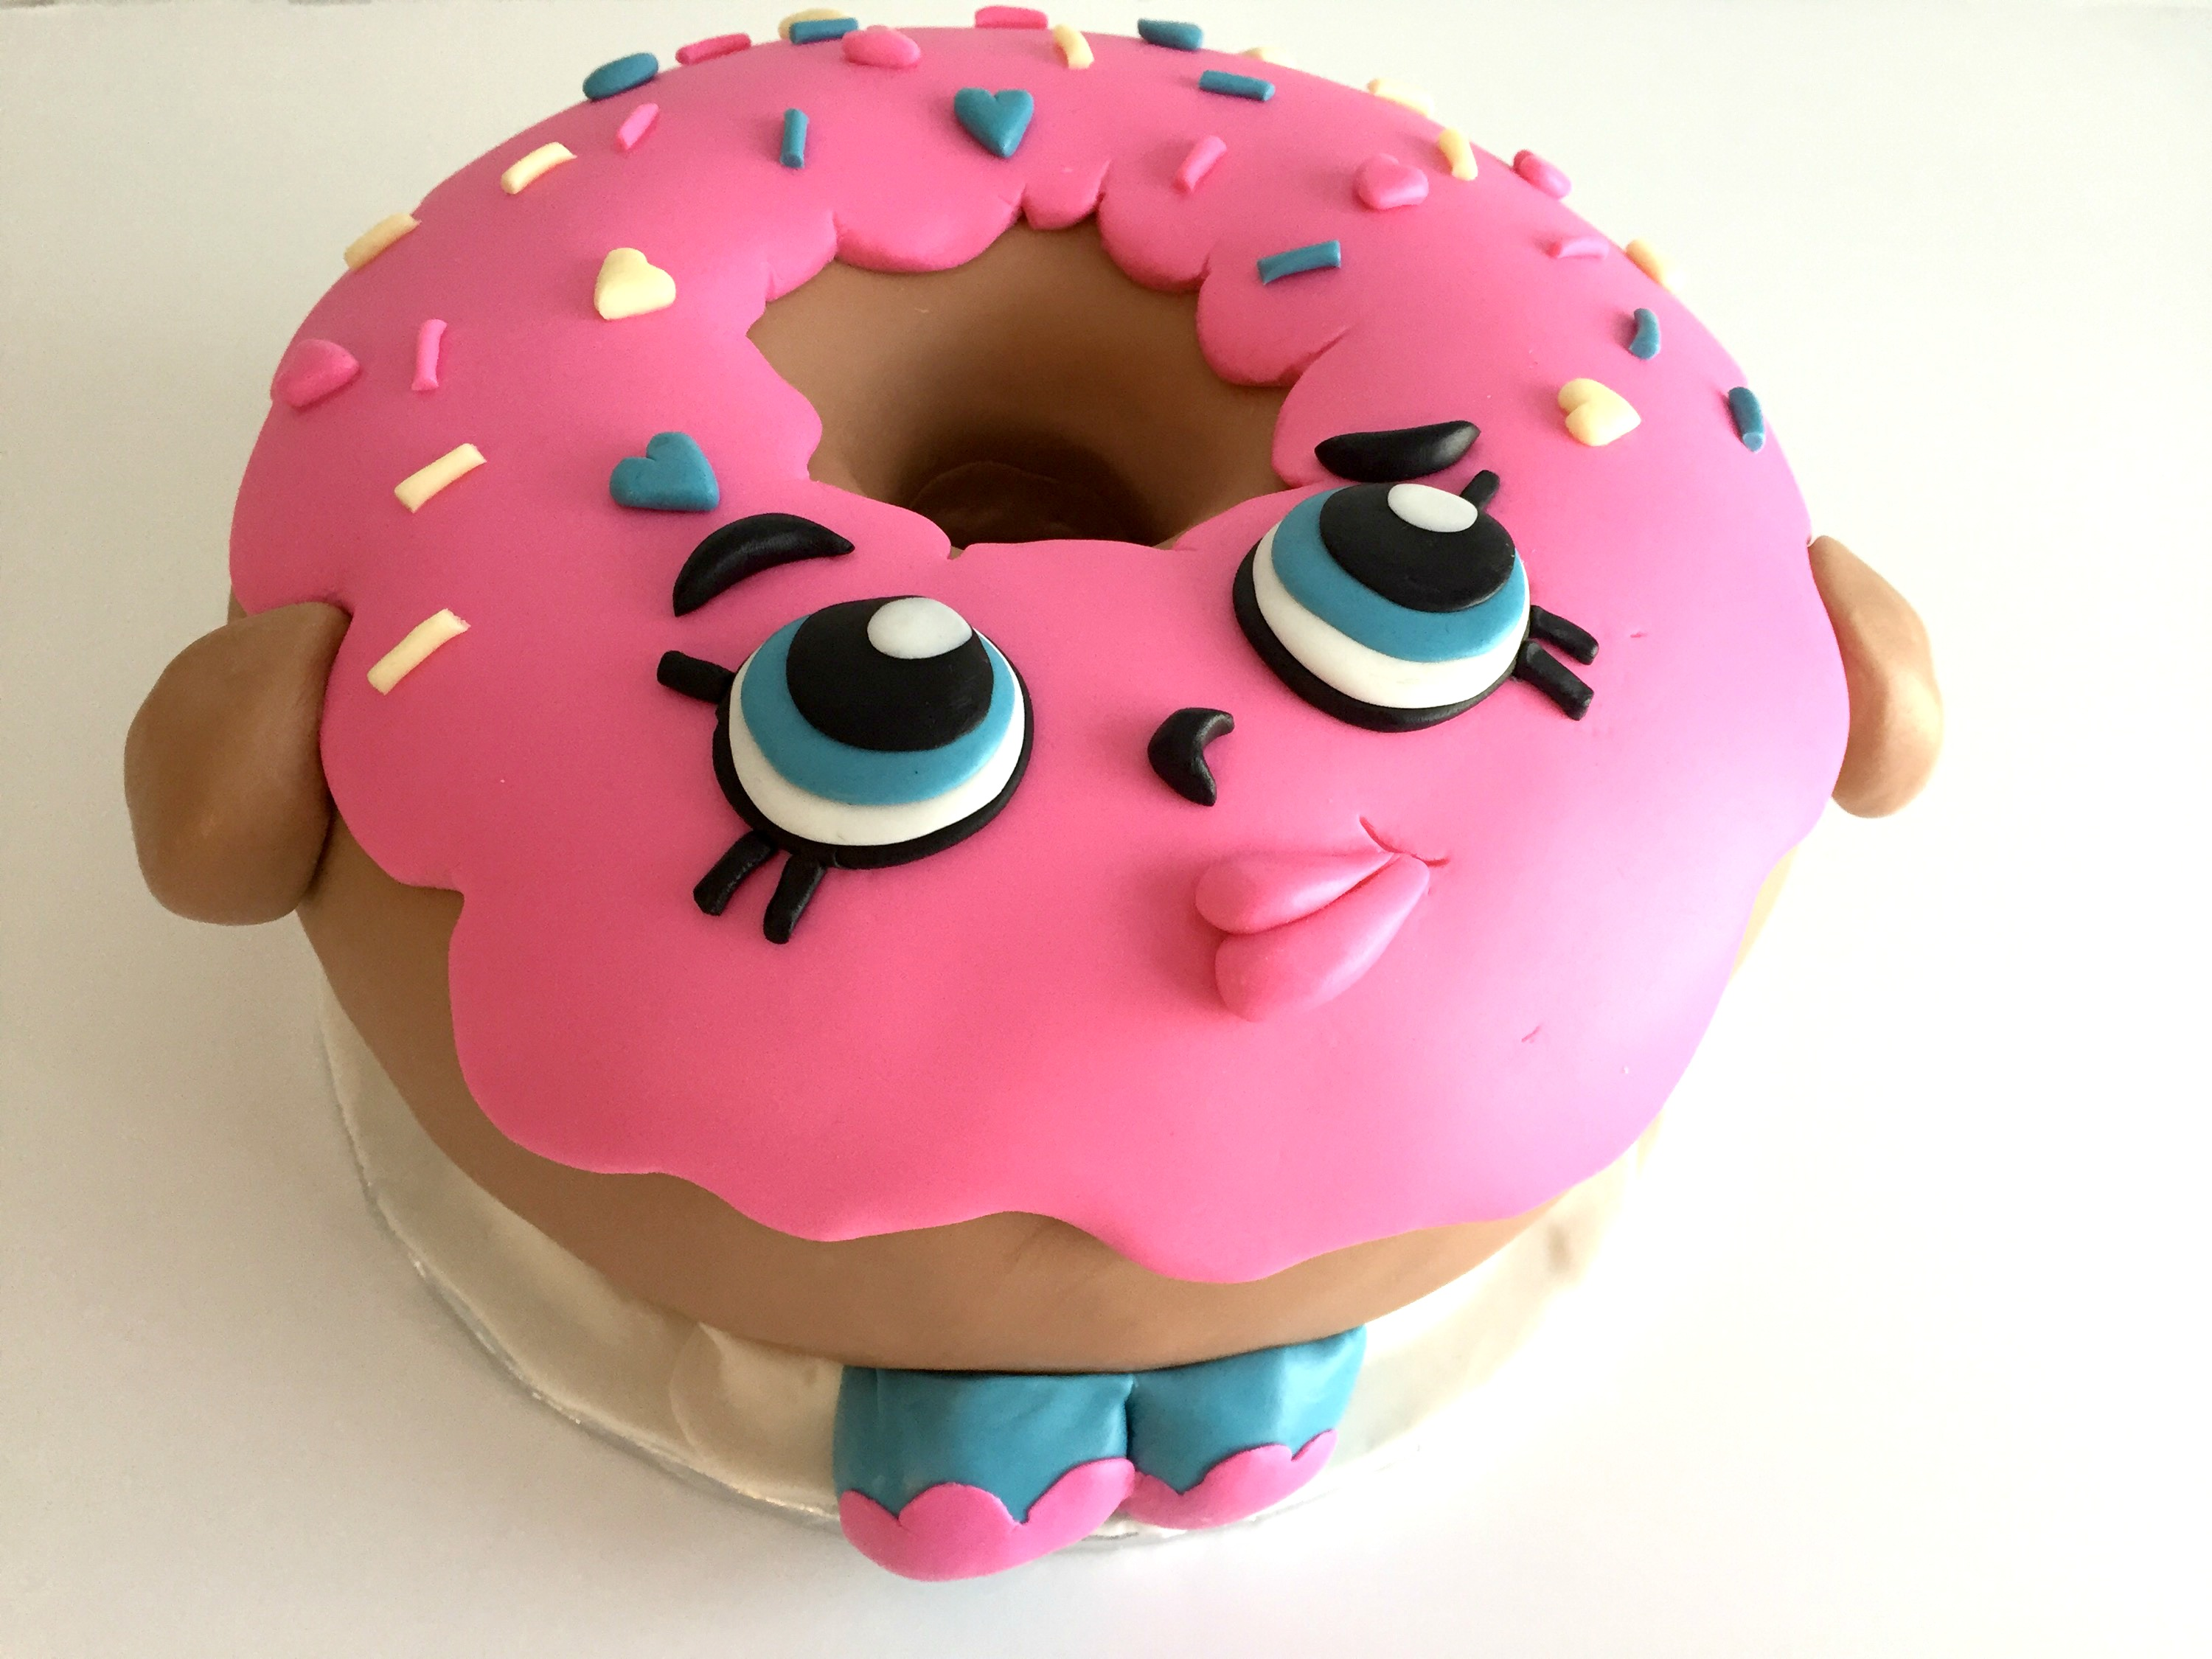 10 Adorable Shopkins Cakes That Will Wow Your Guests